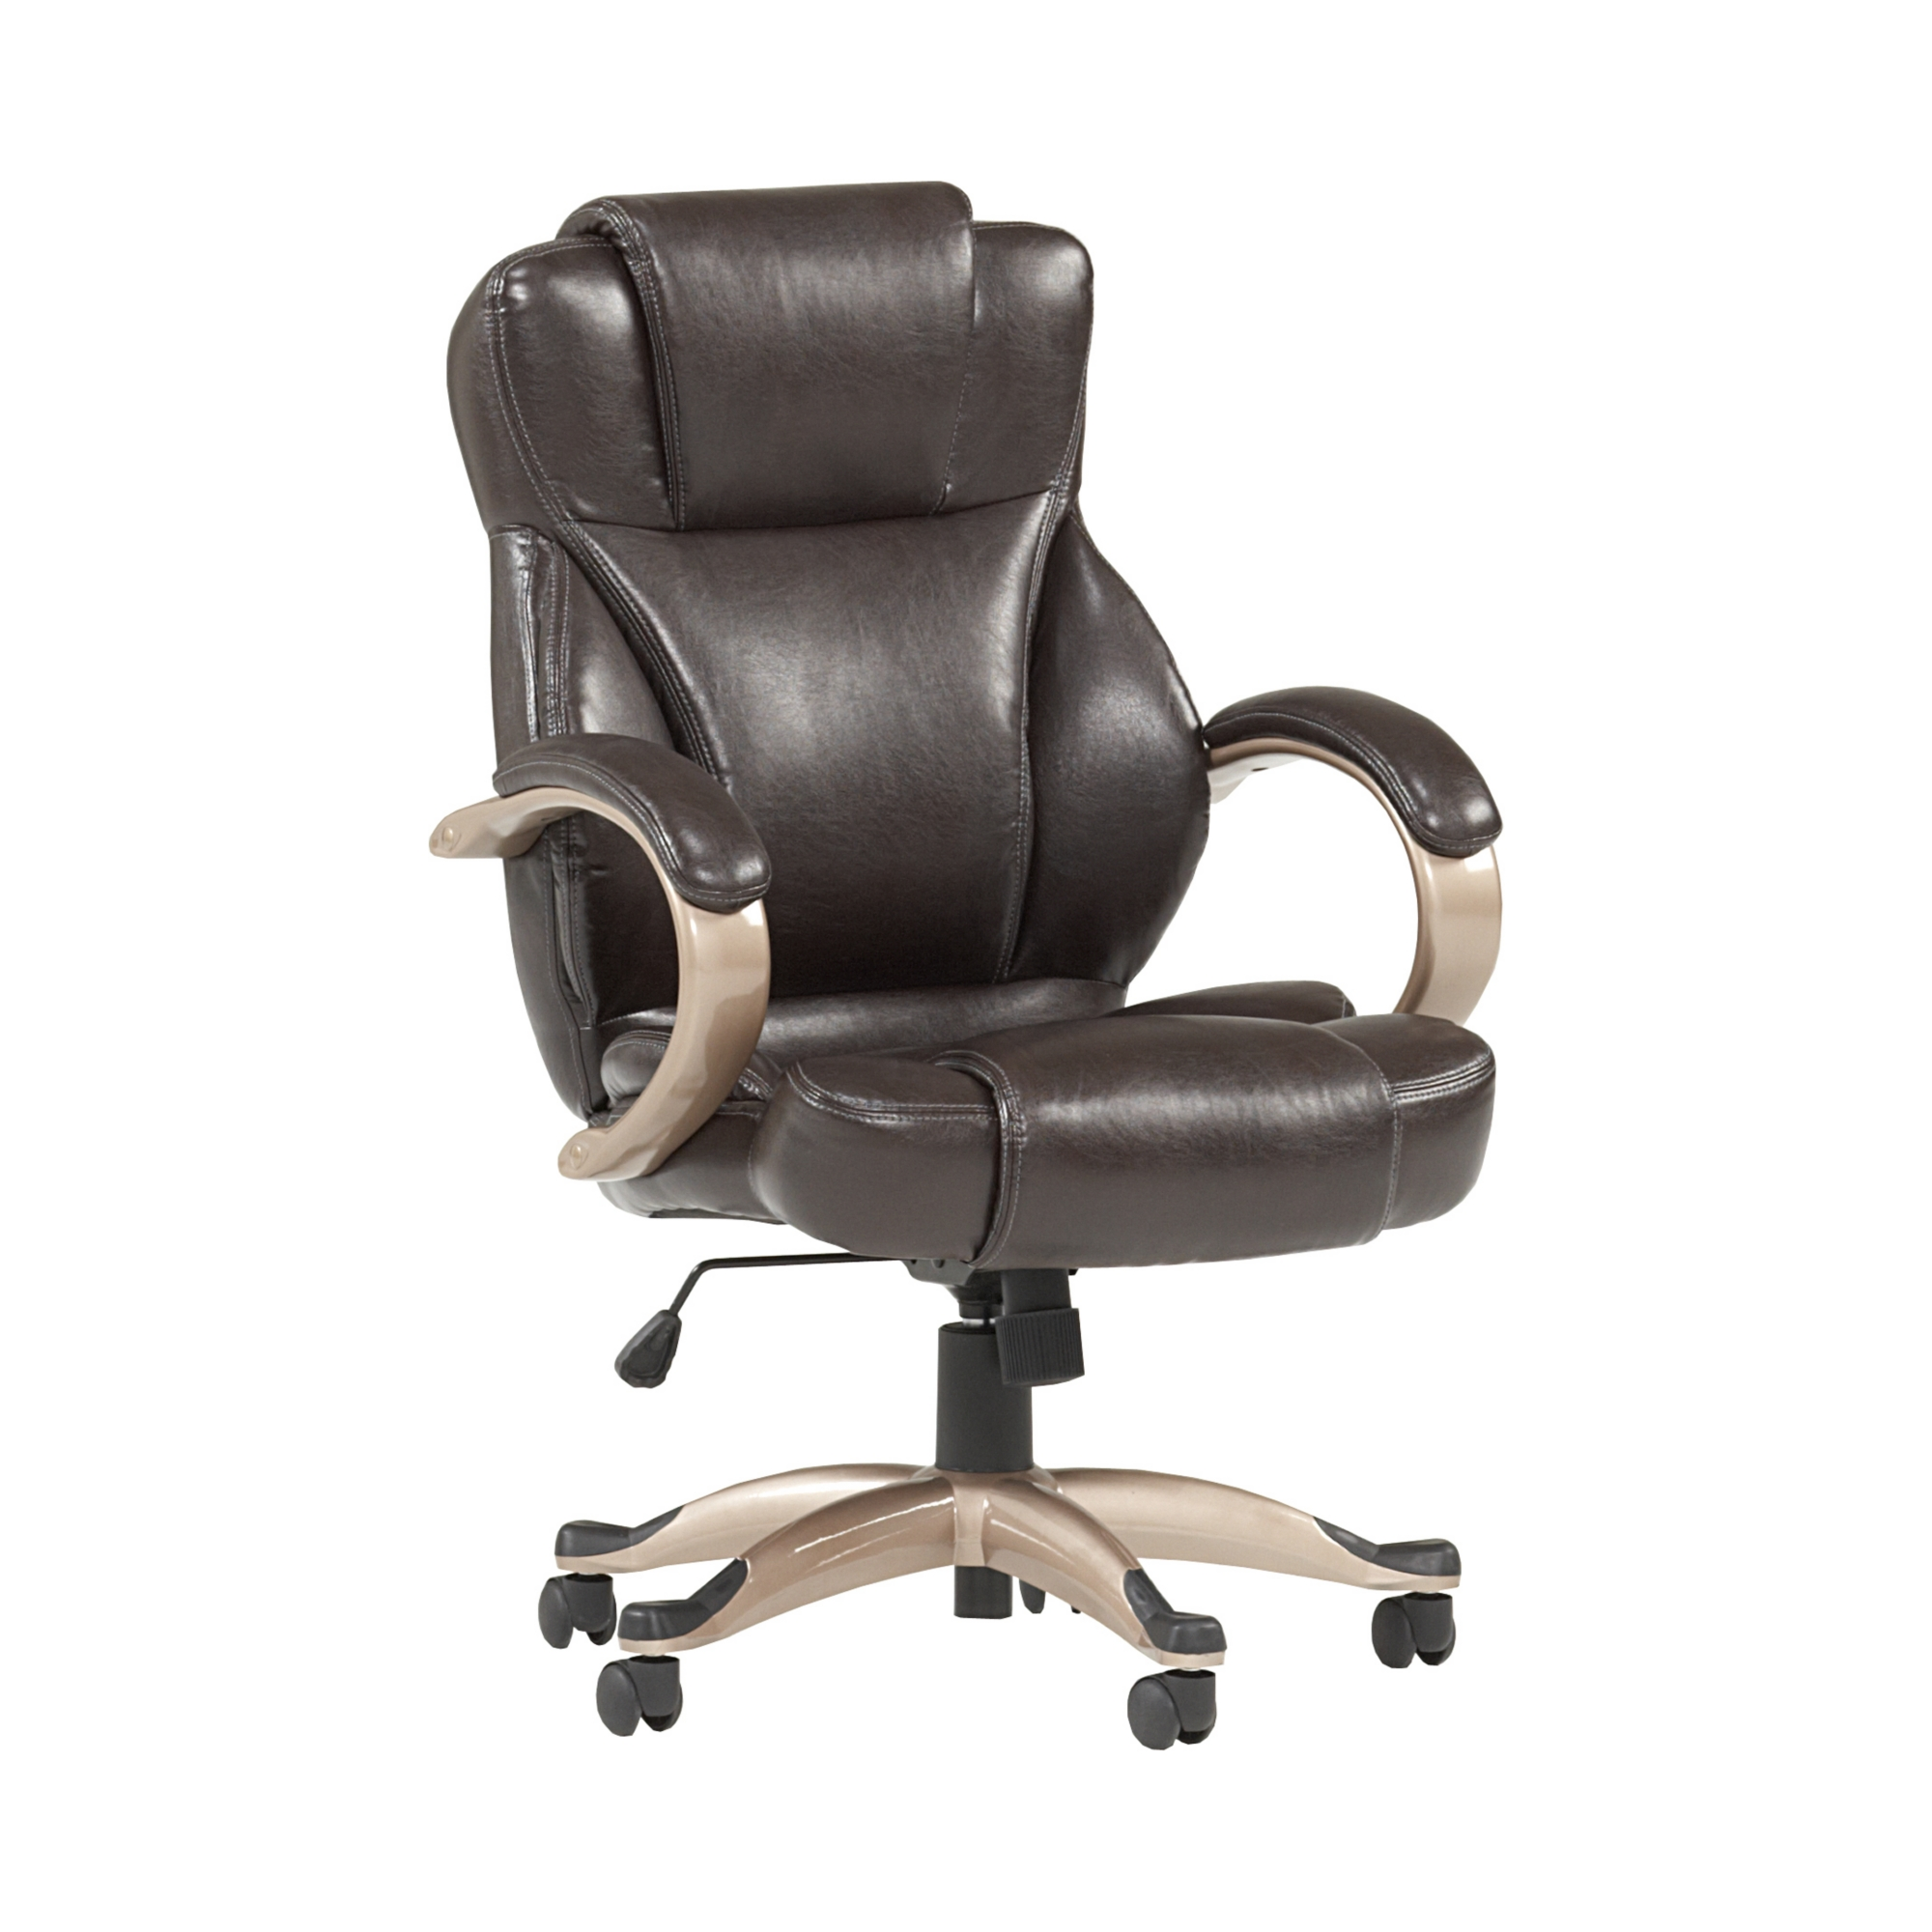 friendly back shipping office and eco bonded cddf today wellness health in free leather chair frye mid overstock home chocolate product motion serta garden